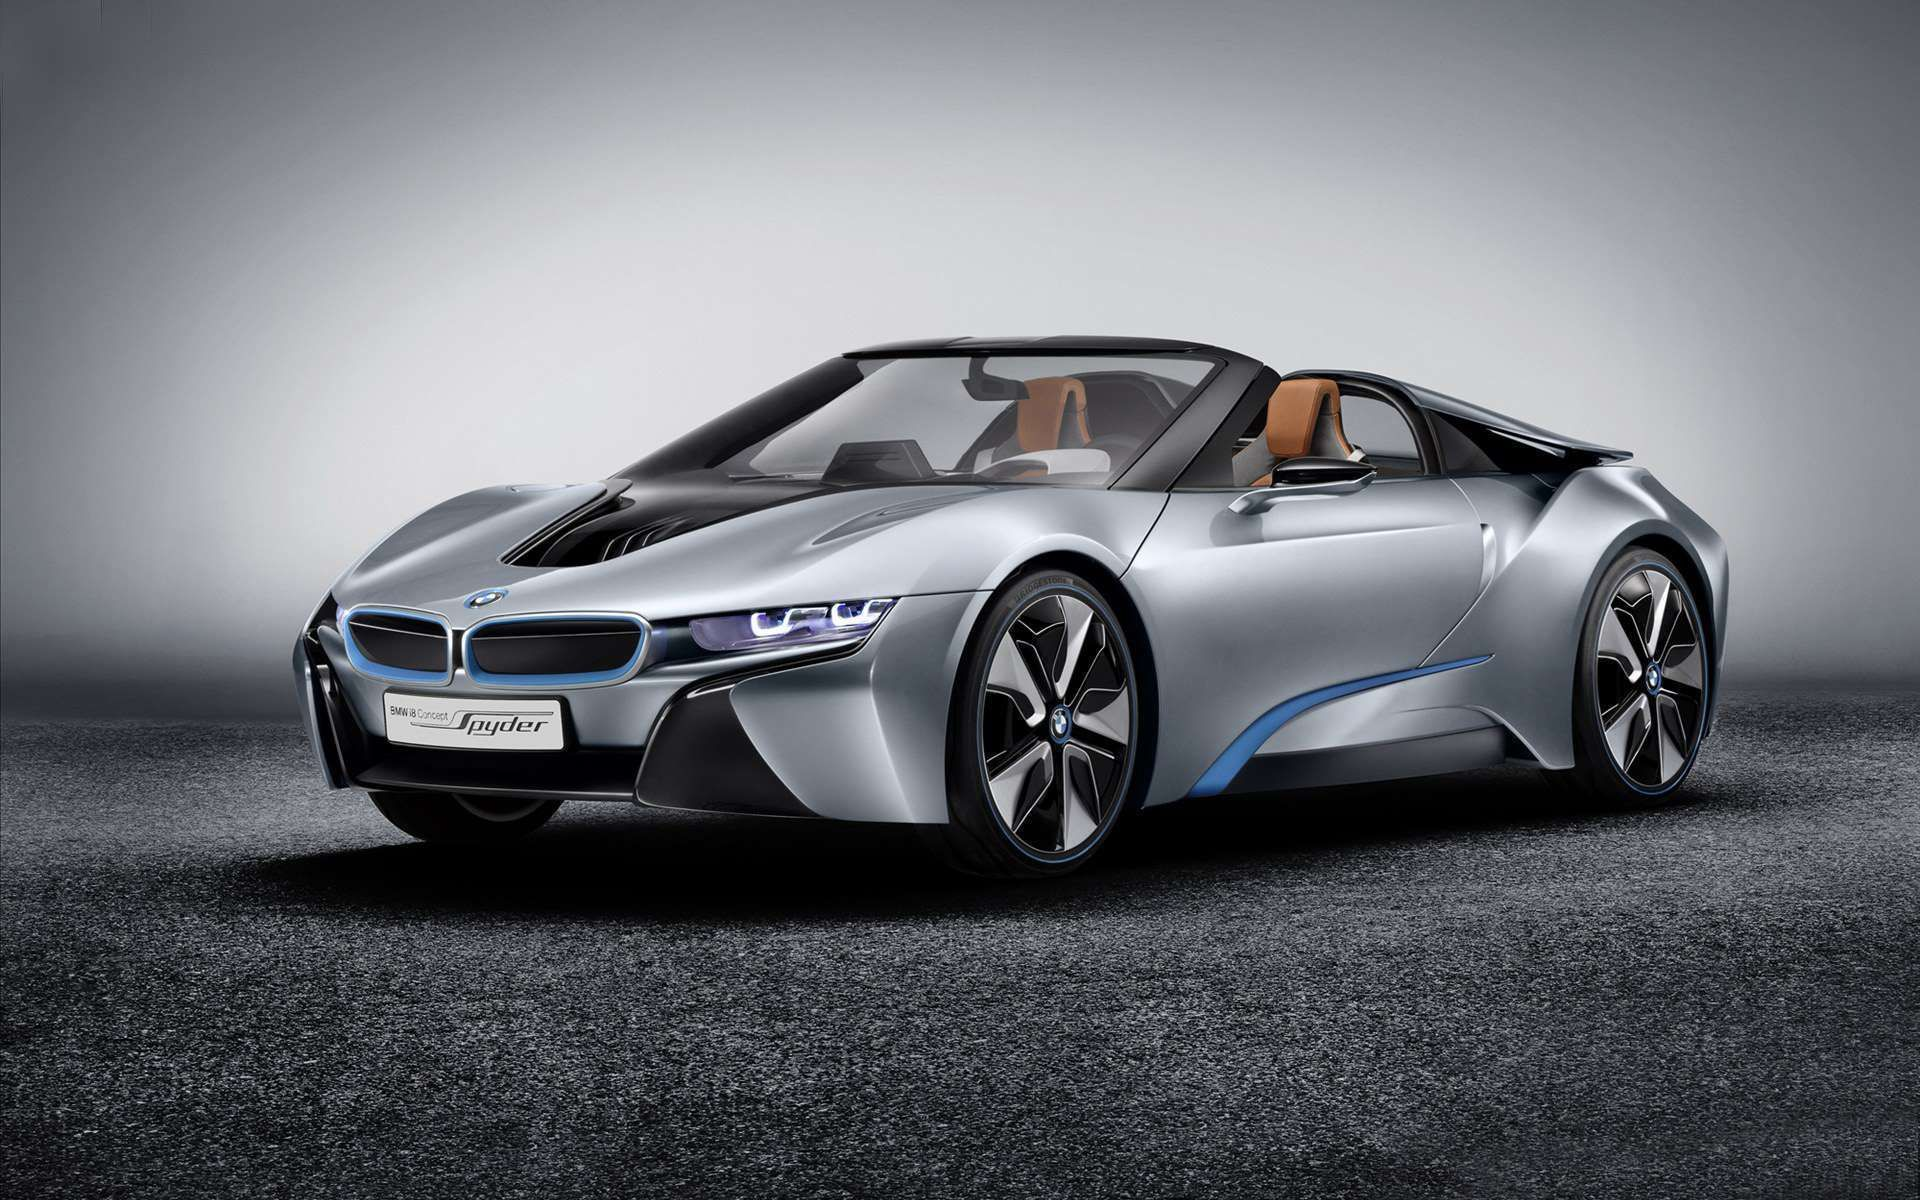 Click Here To Download In Hd Format Bmw I8 Spyder Hd Wallpapers